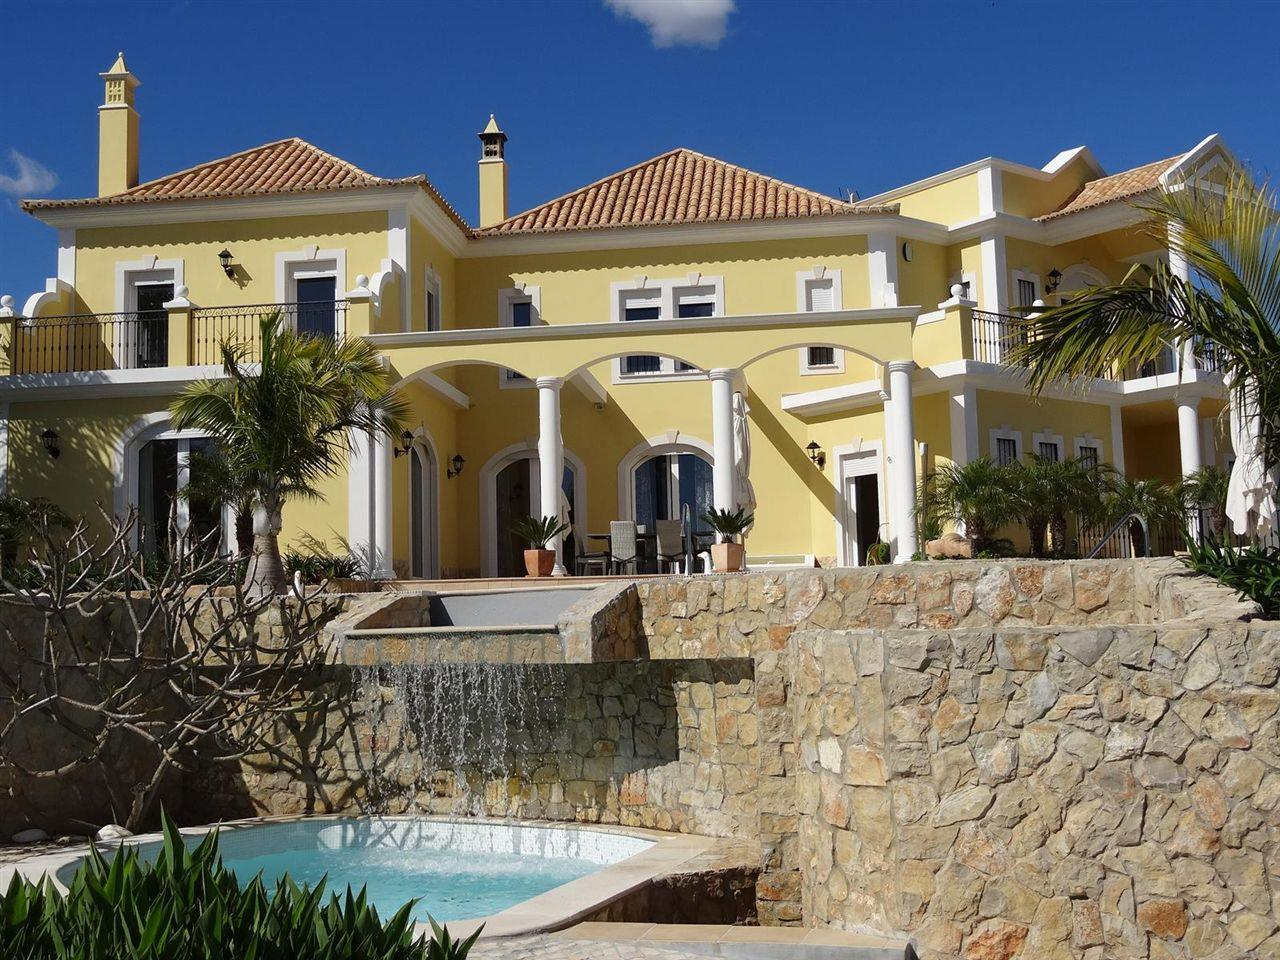 Casa Unifamiliar por un Venta en House, 5 bedrooms, for Sale Loule, Algarve, 0000-000 Portugal